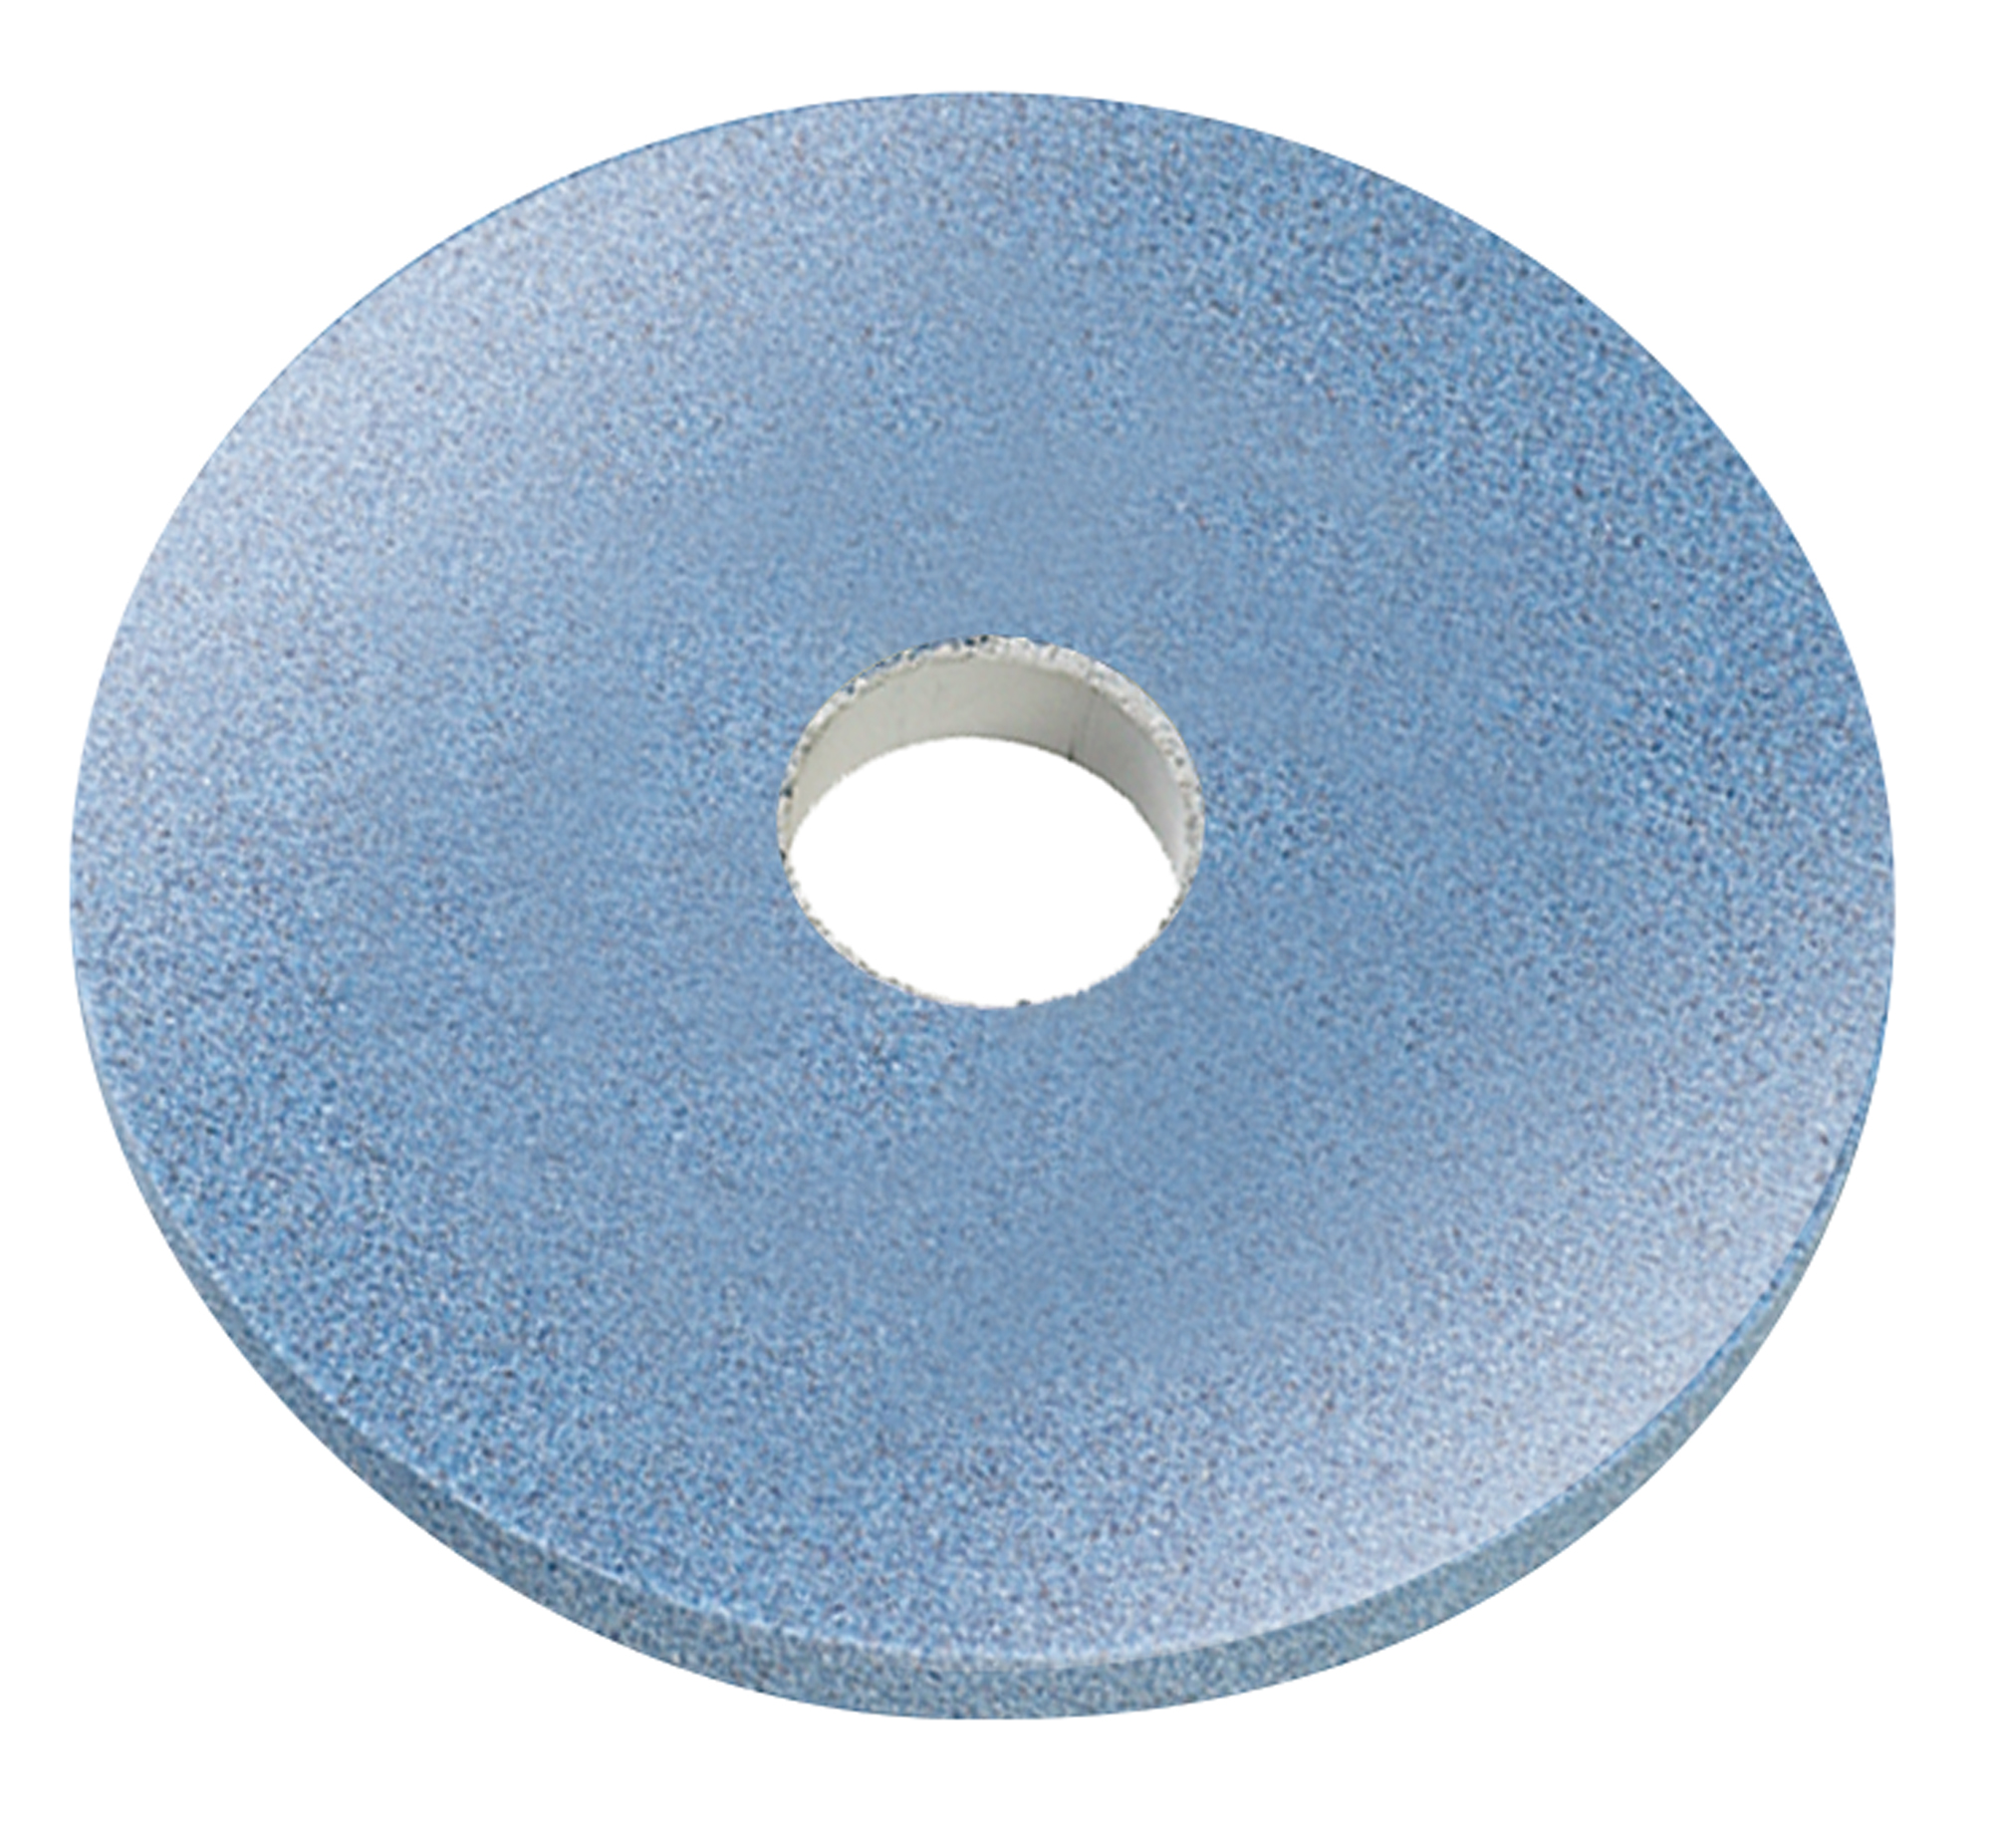 grinding wheel picto